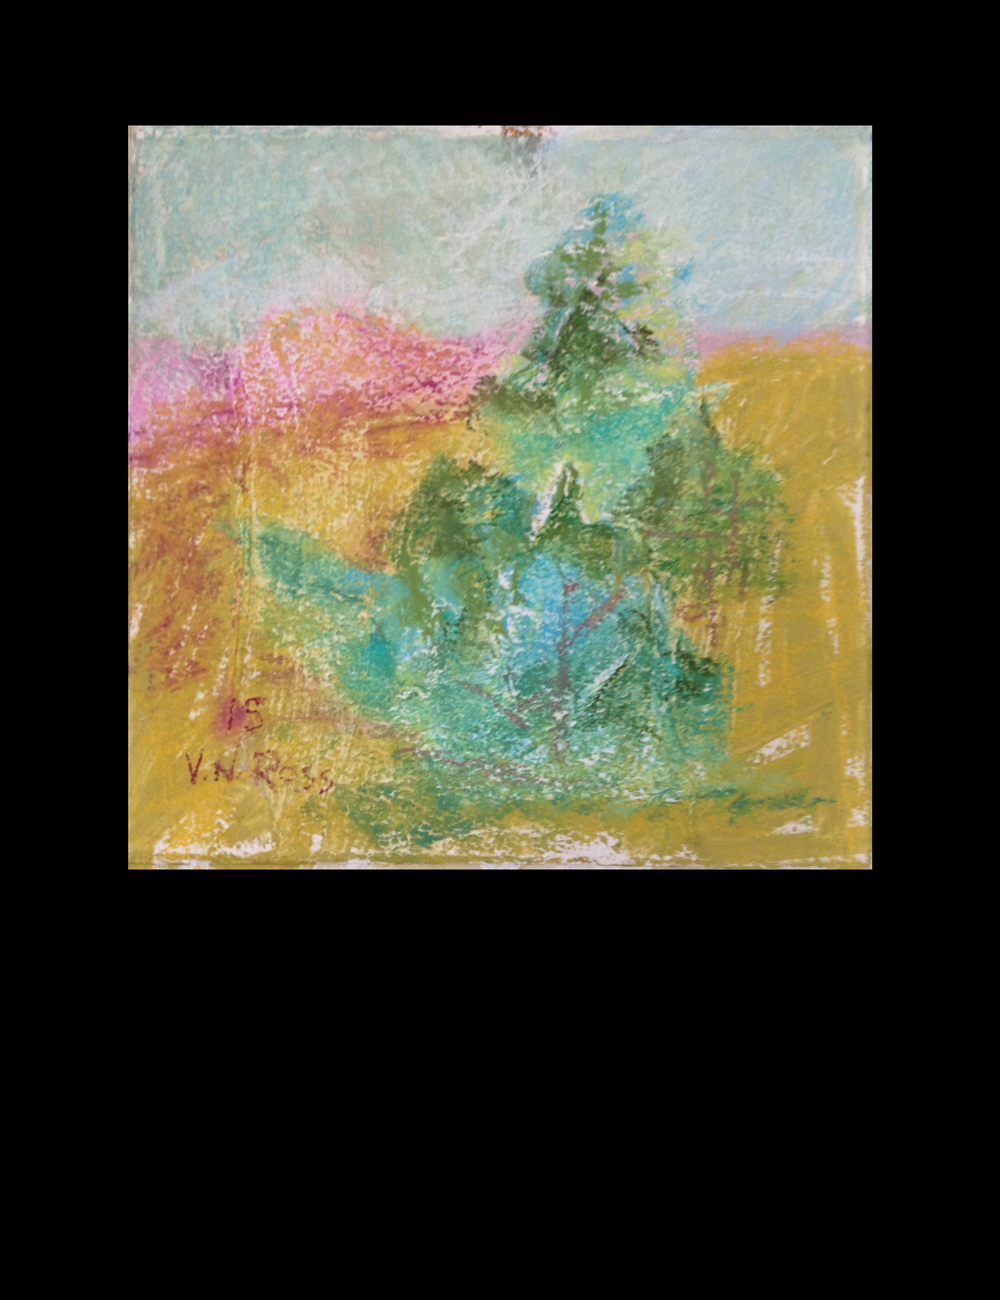 "#15 Over and Over Again 7.5"" x 7.5"" Pastel © V.N.Ross"